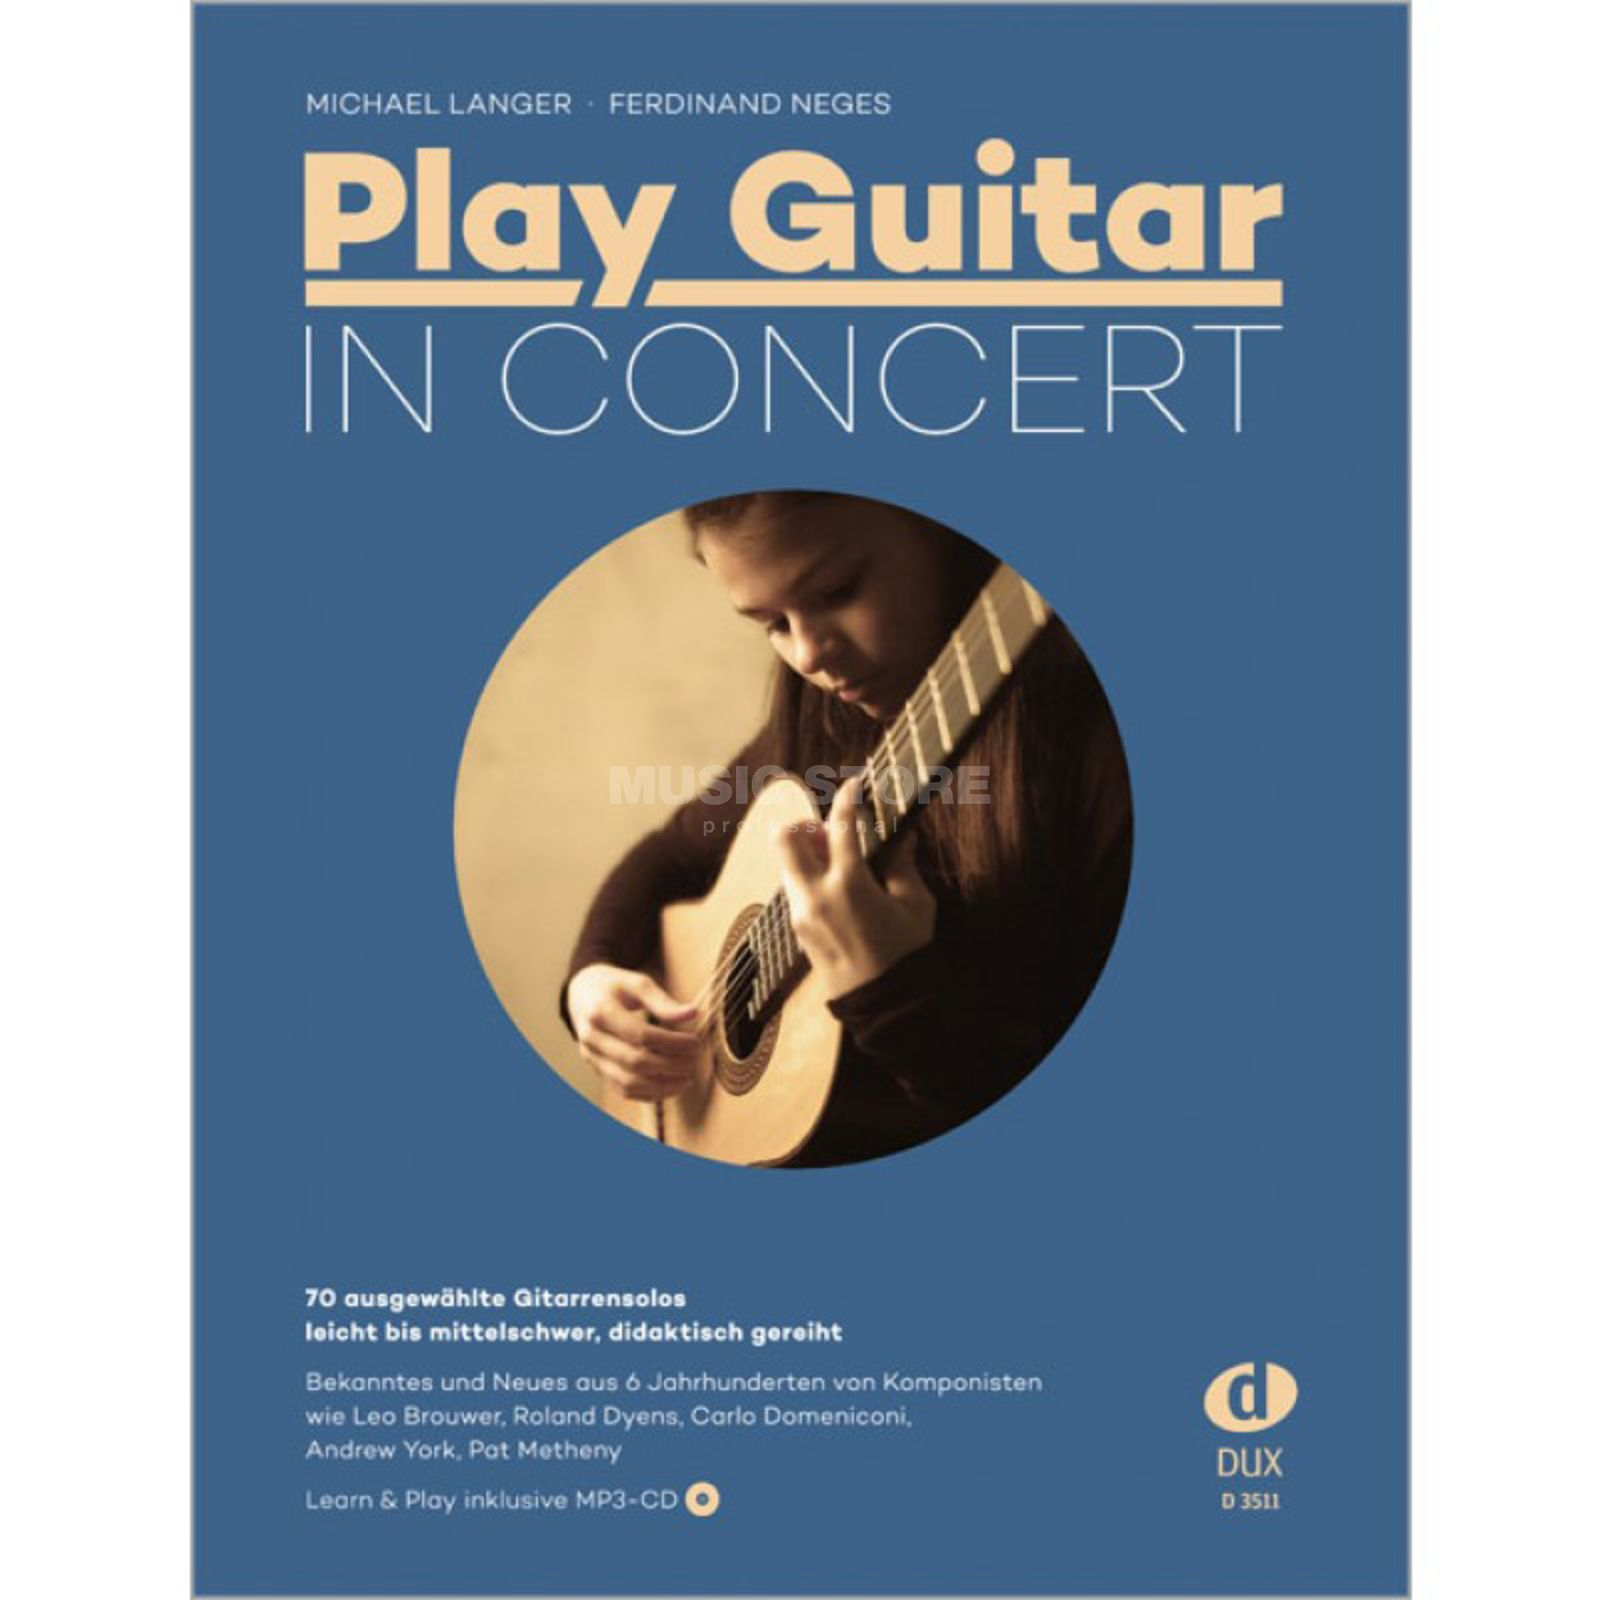 Edition Dux Play Guitar In Concert - Michael Langer, Ferdinand Neges Produktbild